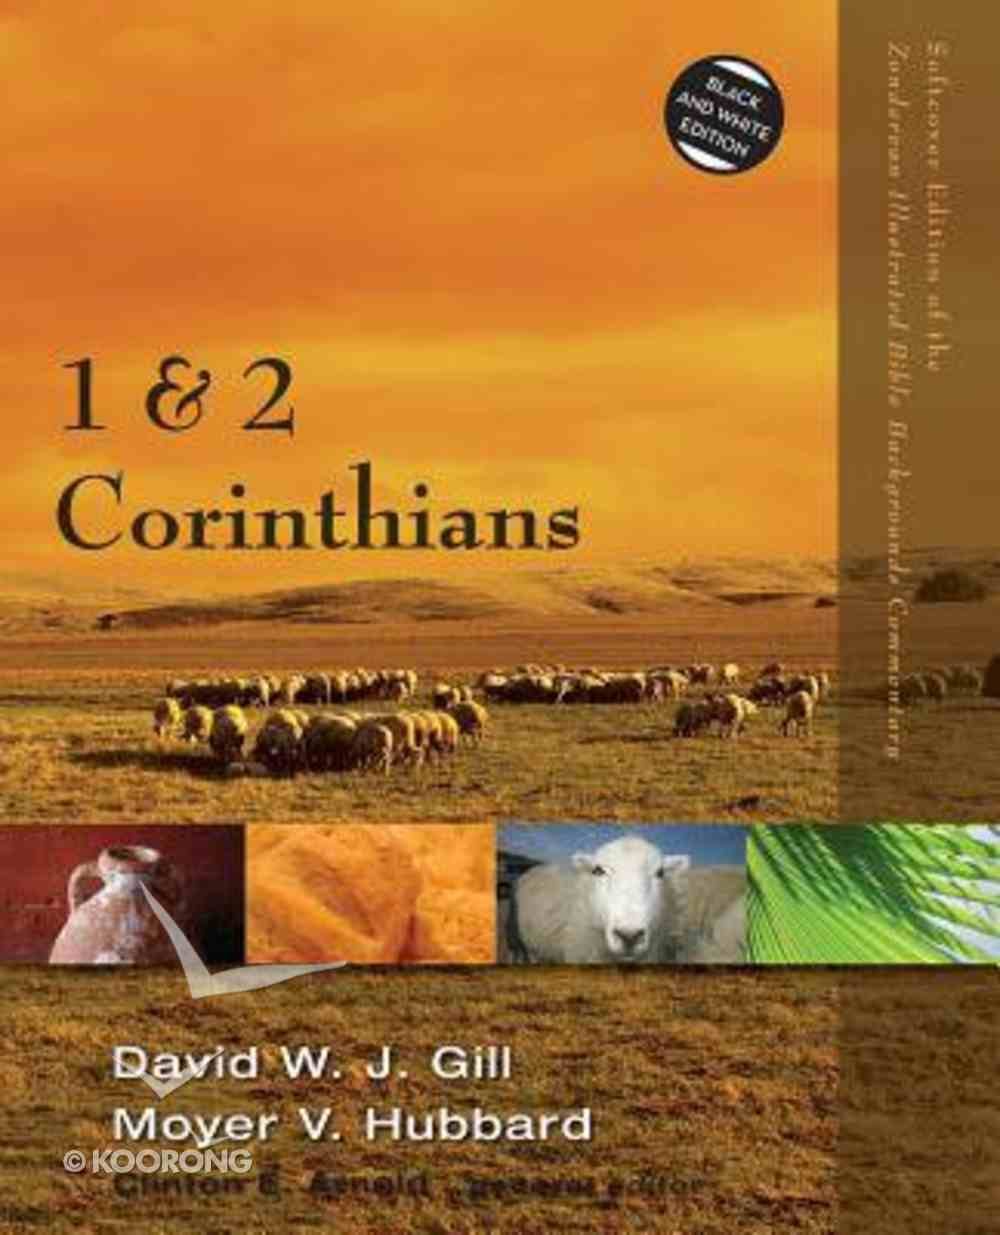 1 & 2 Corinthians (Zondervan Illustrated Bible Backgrounds Commentary Series) Paperback